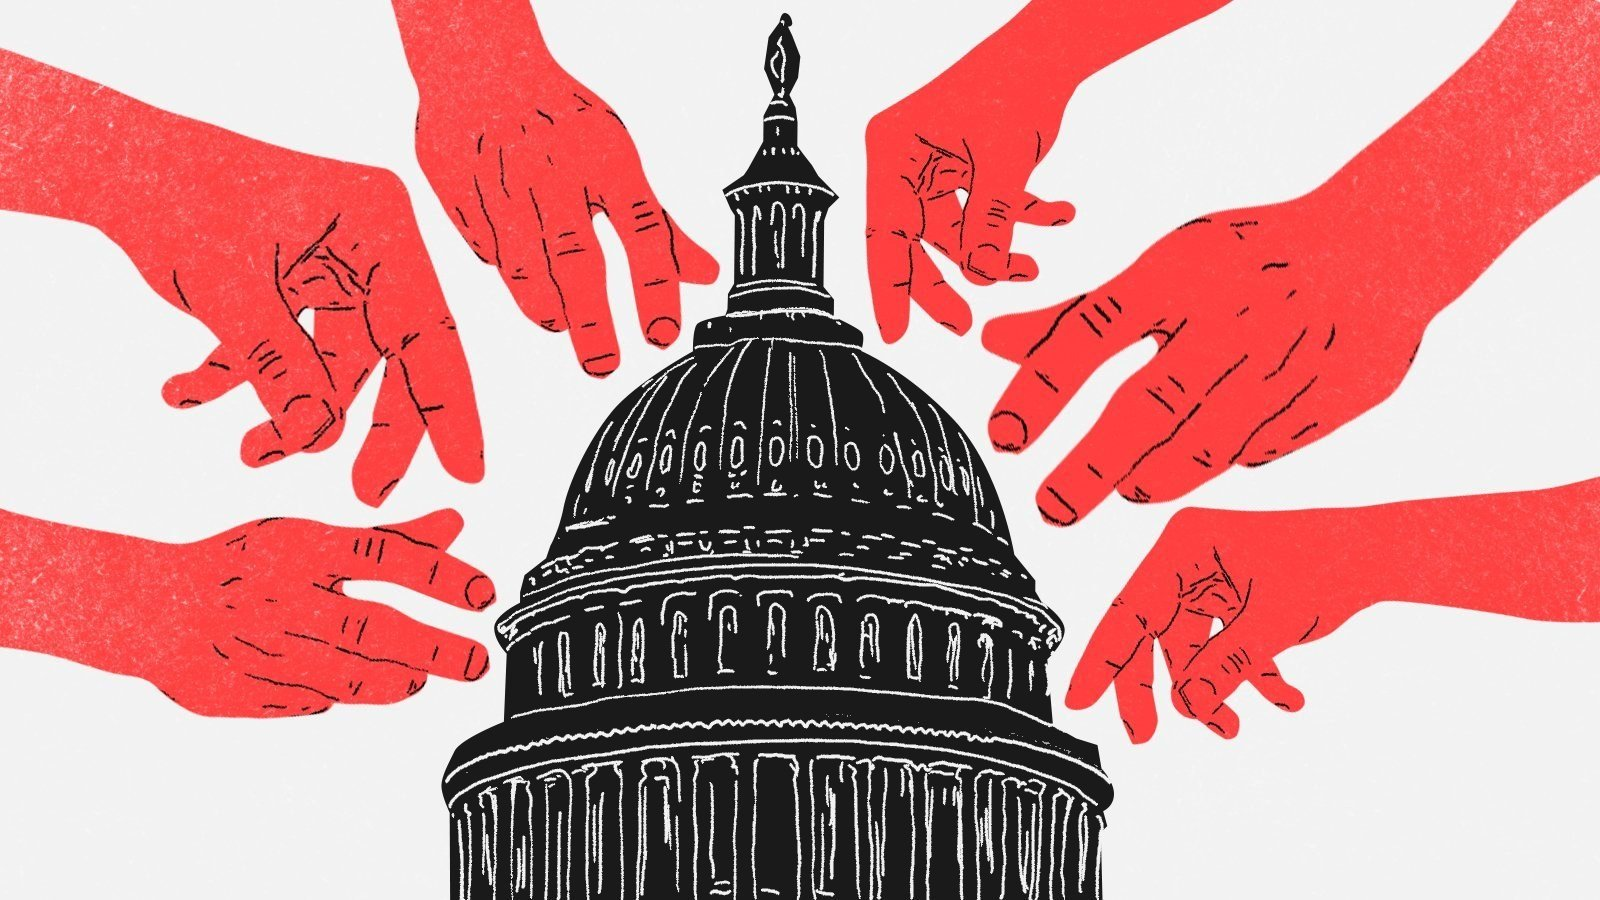 House lawmakers on Tuesday will review the chamber's sexual harassment policies in the wake of sweeping allegations of sexual misconduct and harassment that have rocked powerful institutions and industries across the country.